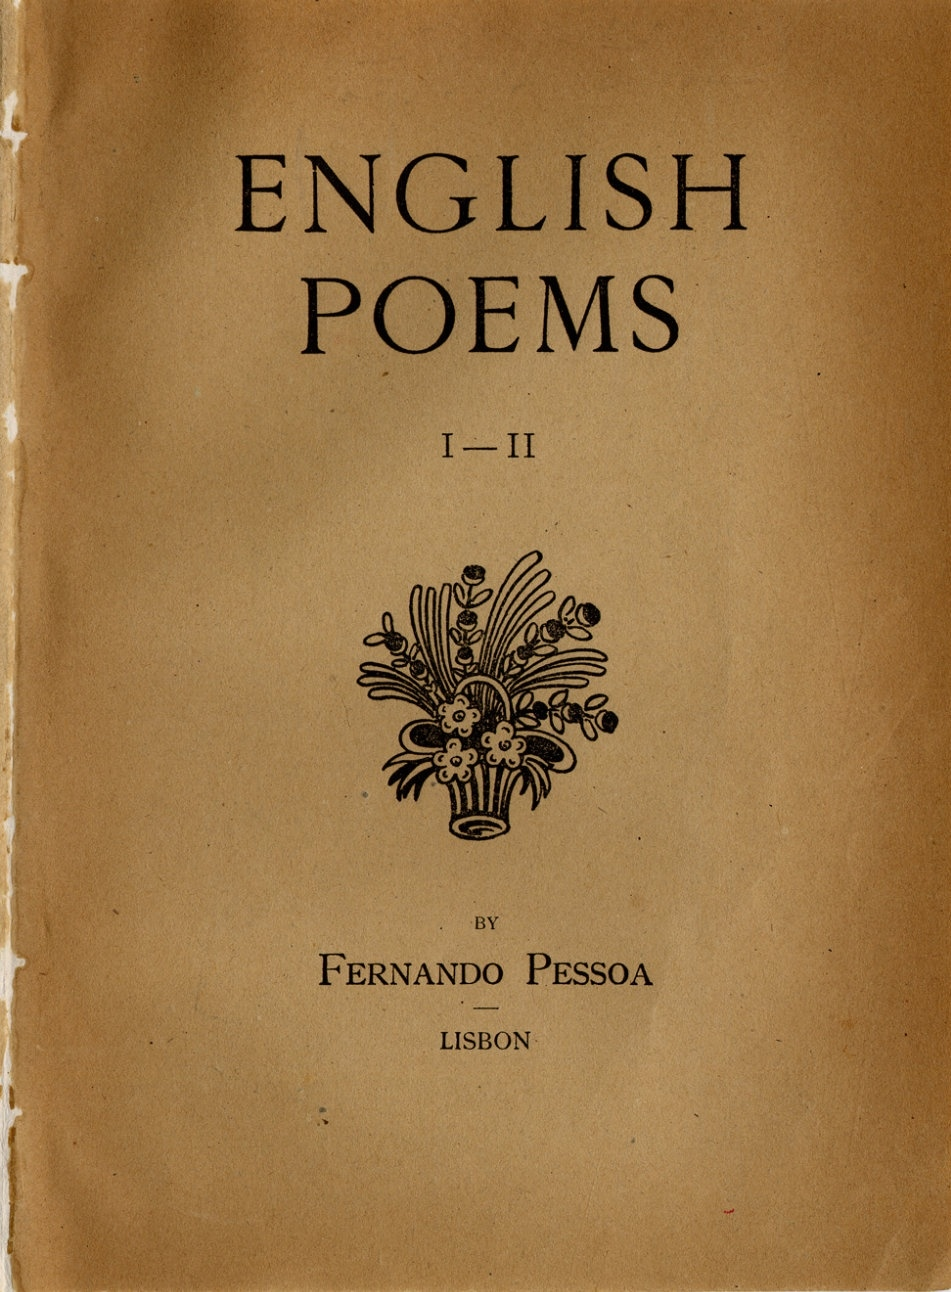 cfp_english_poems_I_II.jpg